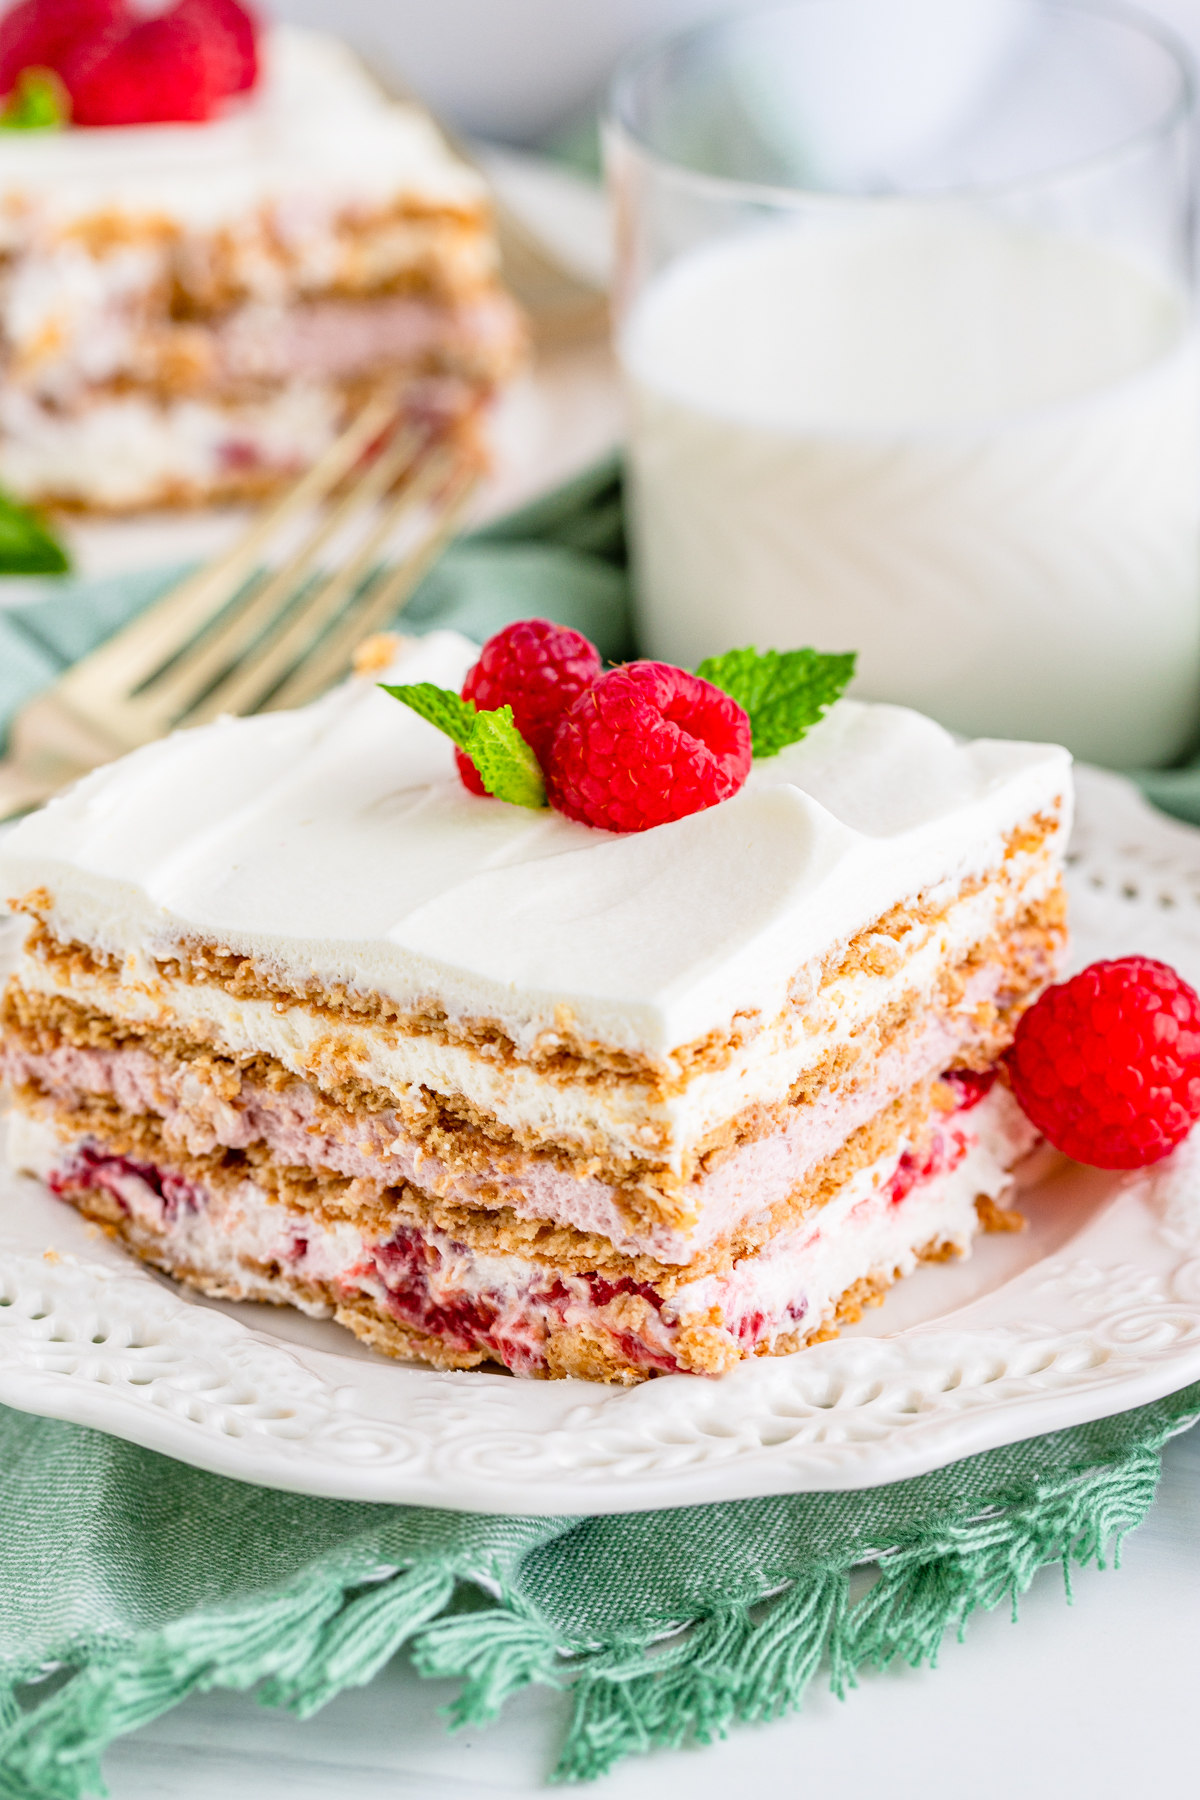 Slice of Raspberry Icebox Cake slice on white plate topped with raspberries and mint